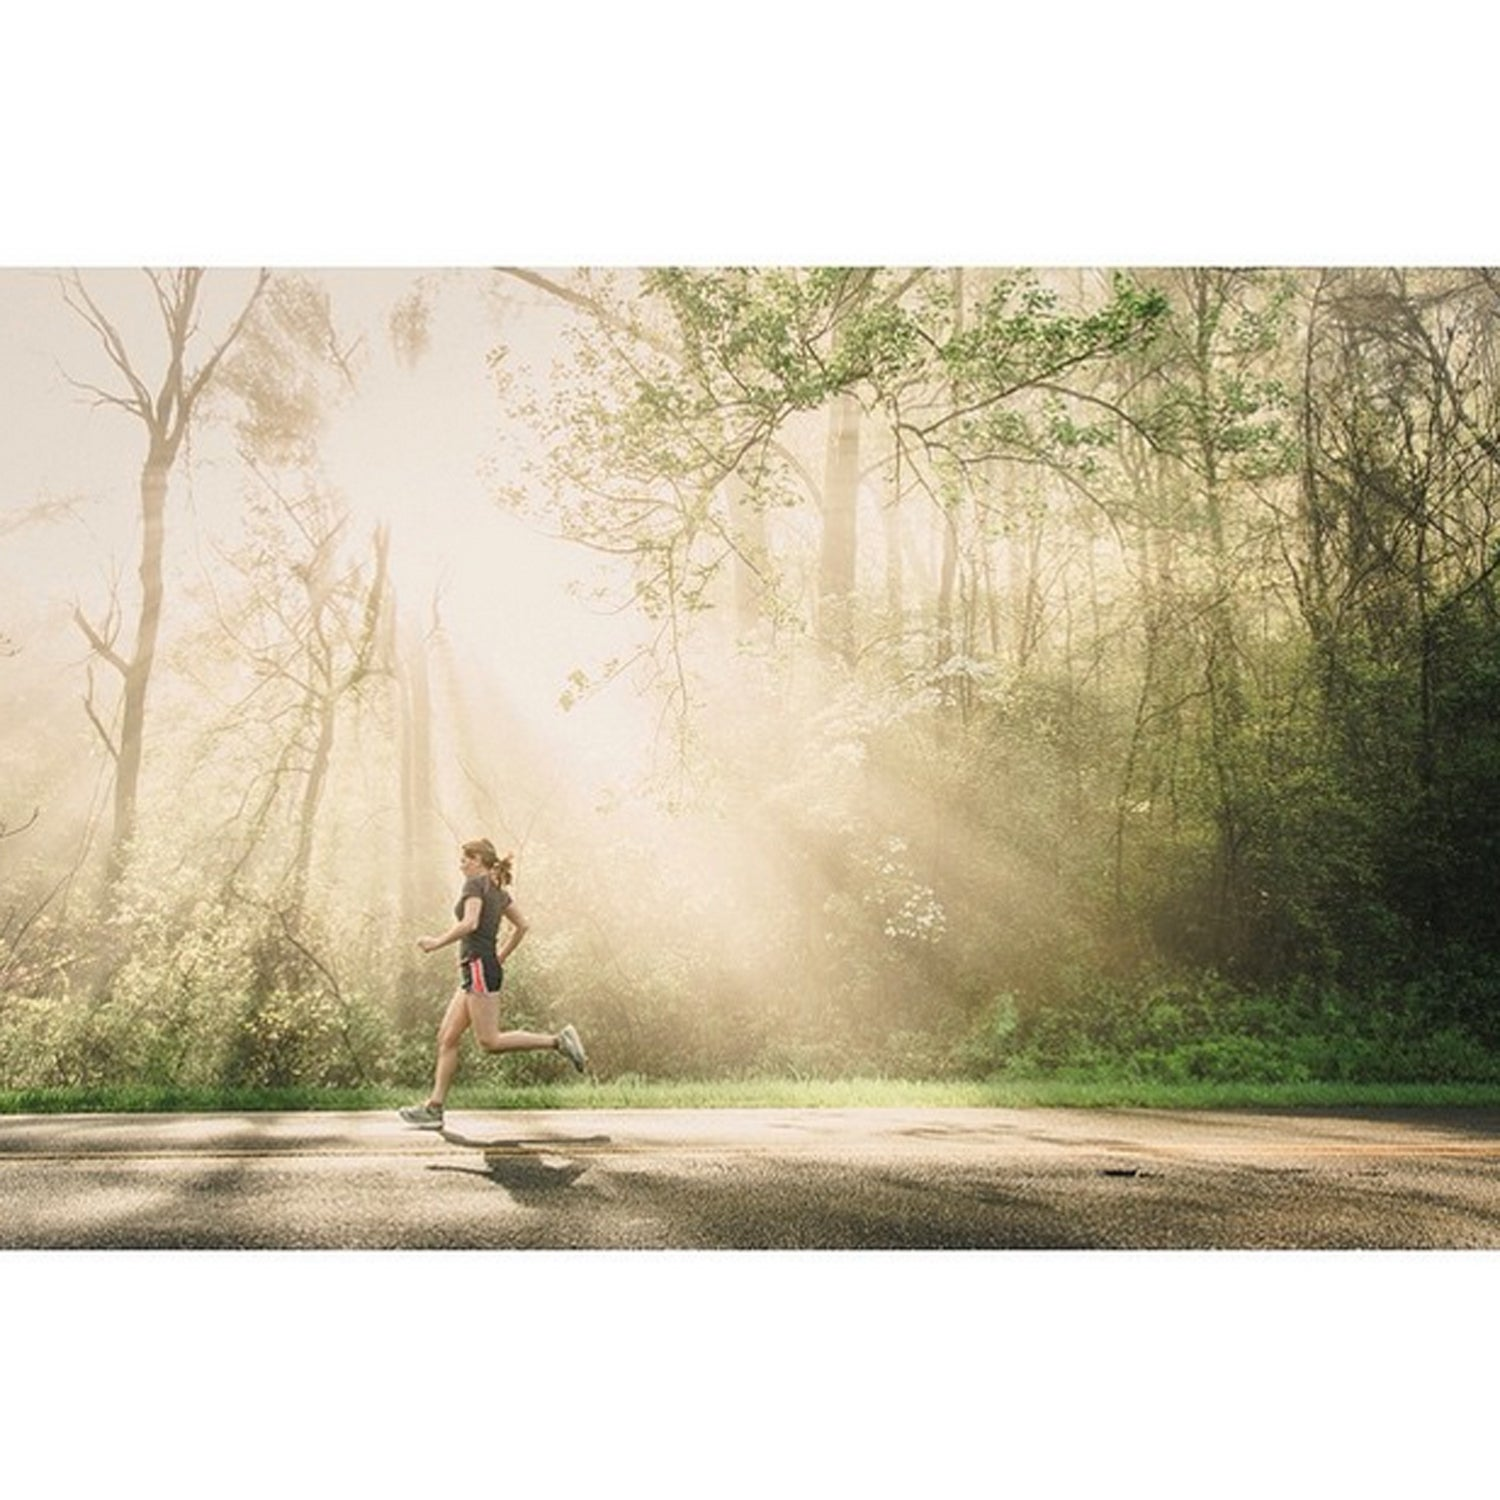 Sometimes spontaneity can trump all of your planning. Luckily my beautiful wife was willing to do some quick running modeling on the #blueridgeparkway this morning just as the sunlight was starting to burn off the morning mist.